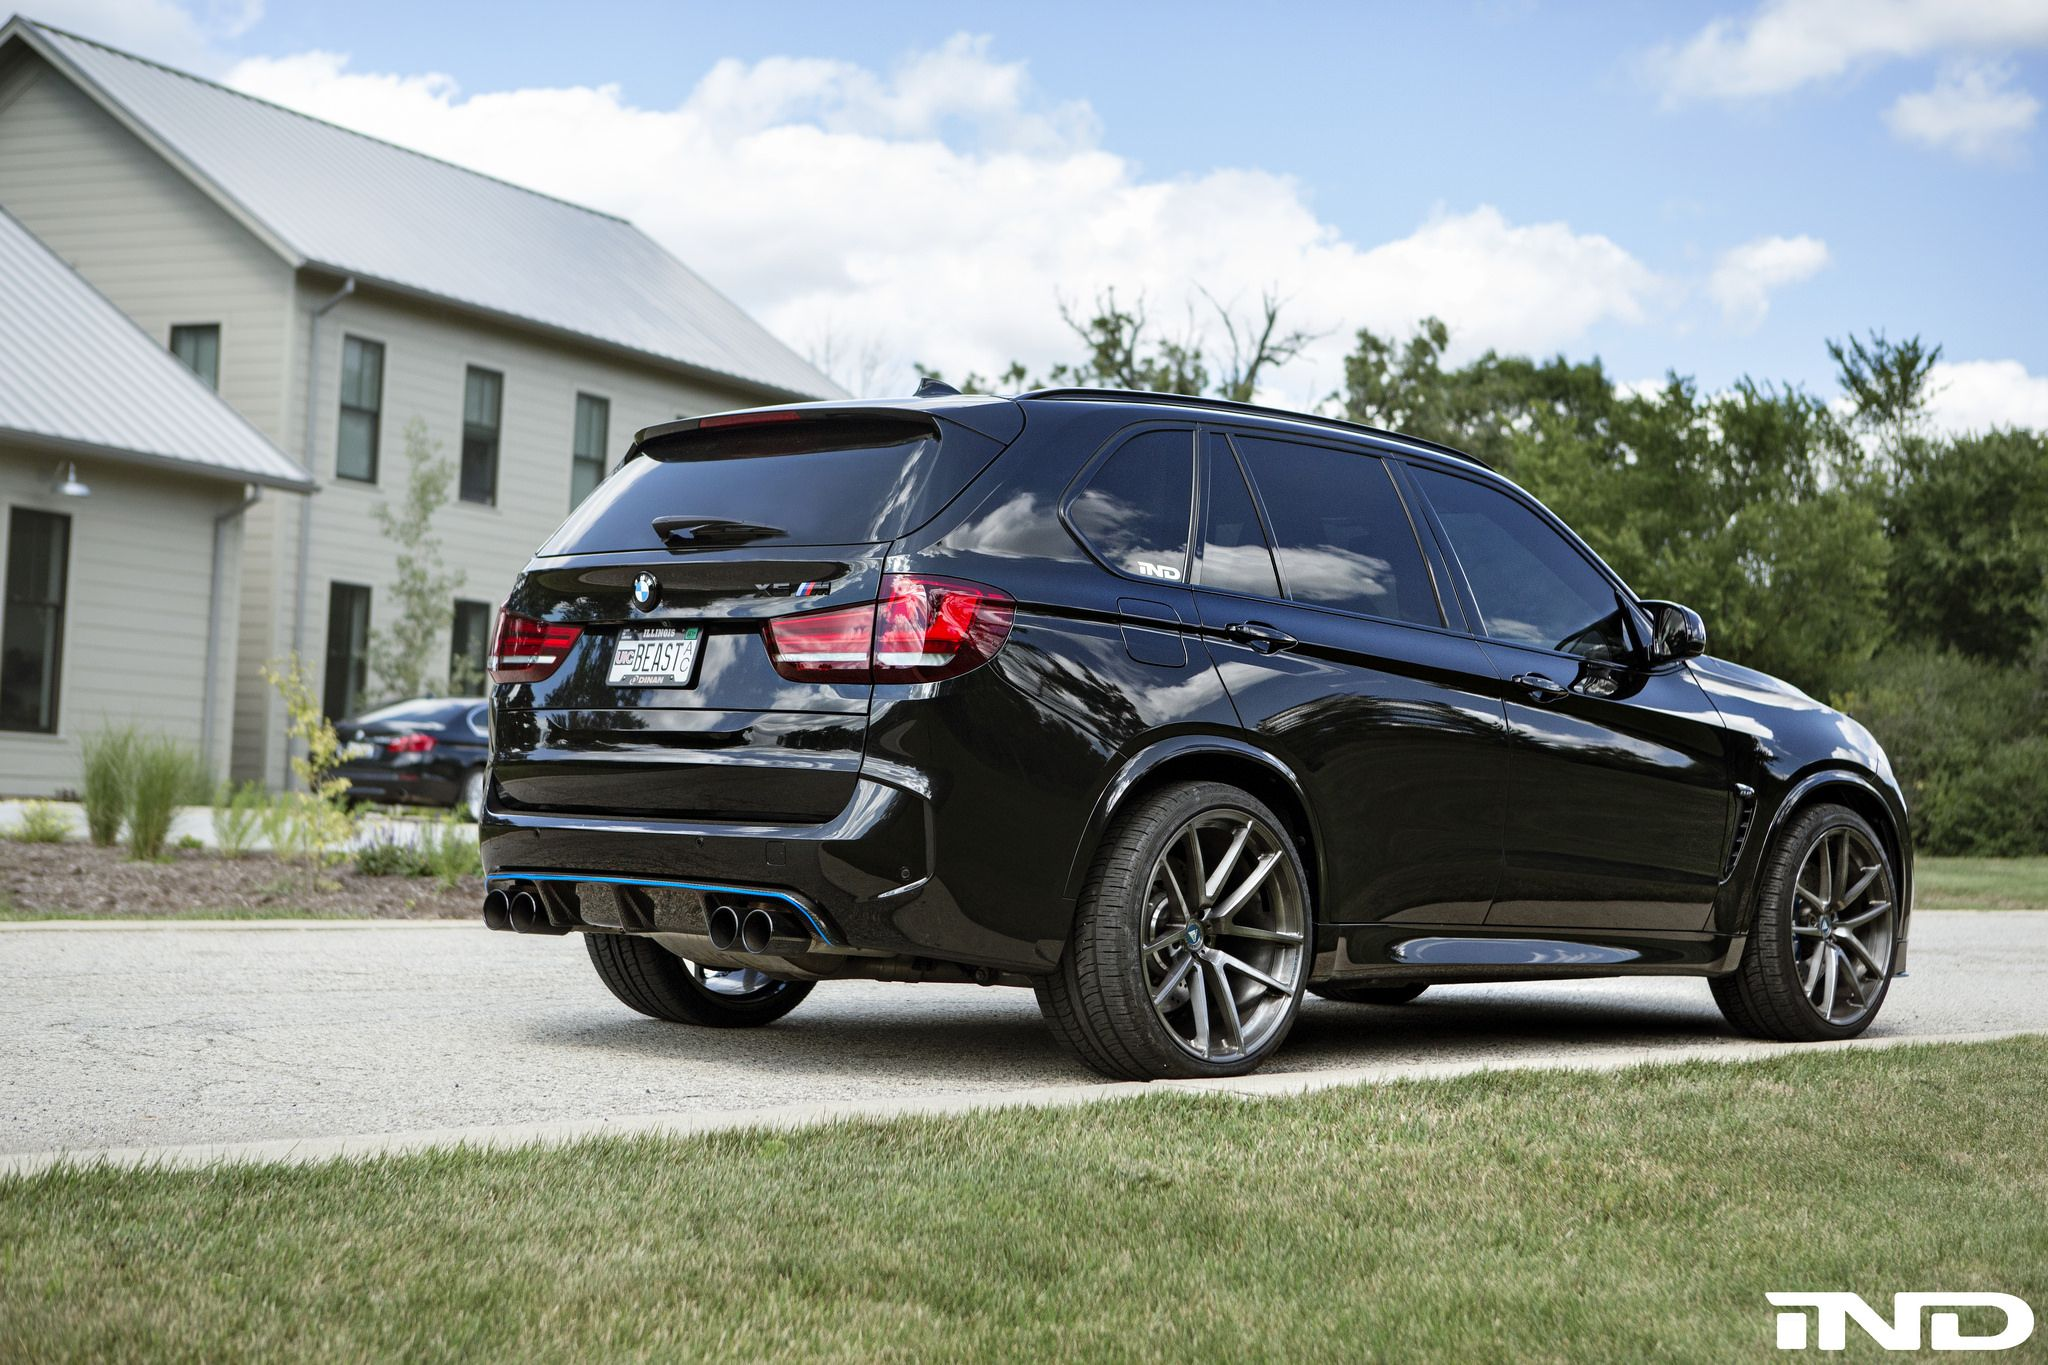 2014 5 bmw x5 m amp x6 m f85 f86 page 5 - 2016 Bmw X5 M 2016 Bmw X5 M Kelley Blue Book Kbb Com 2016 Bmw X5 Suv Pricing Features Edmunds Edmunds Has Detailed Price Information For The